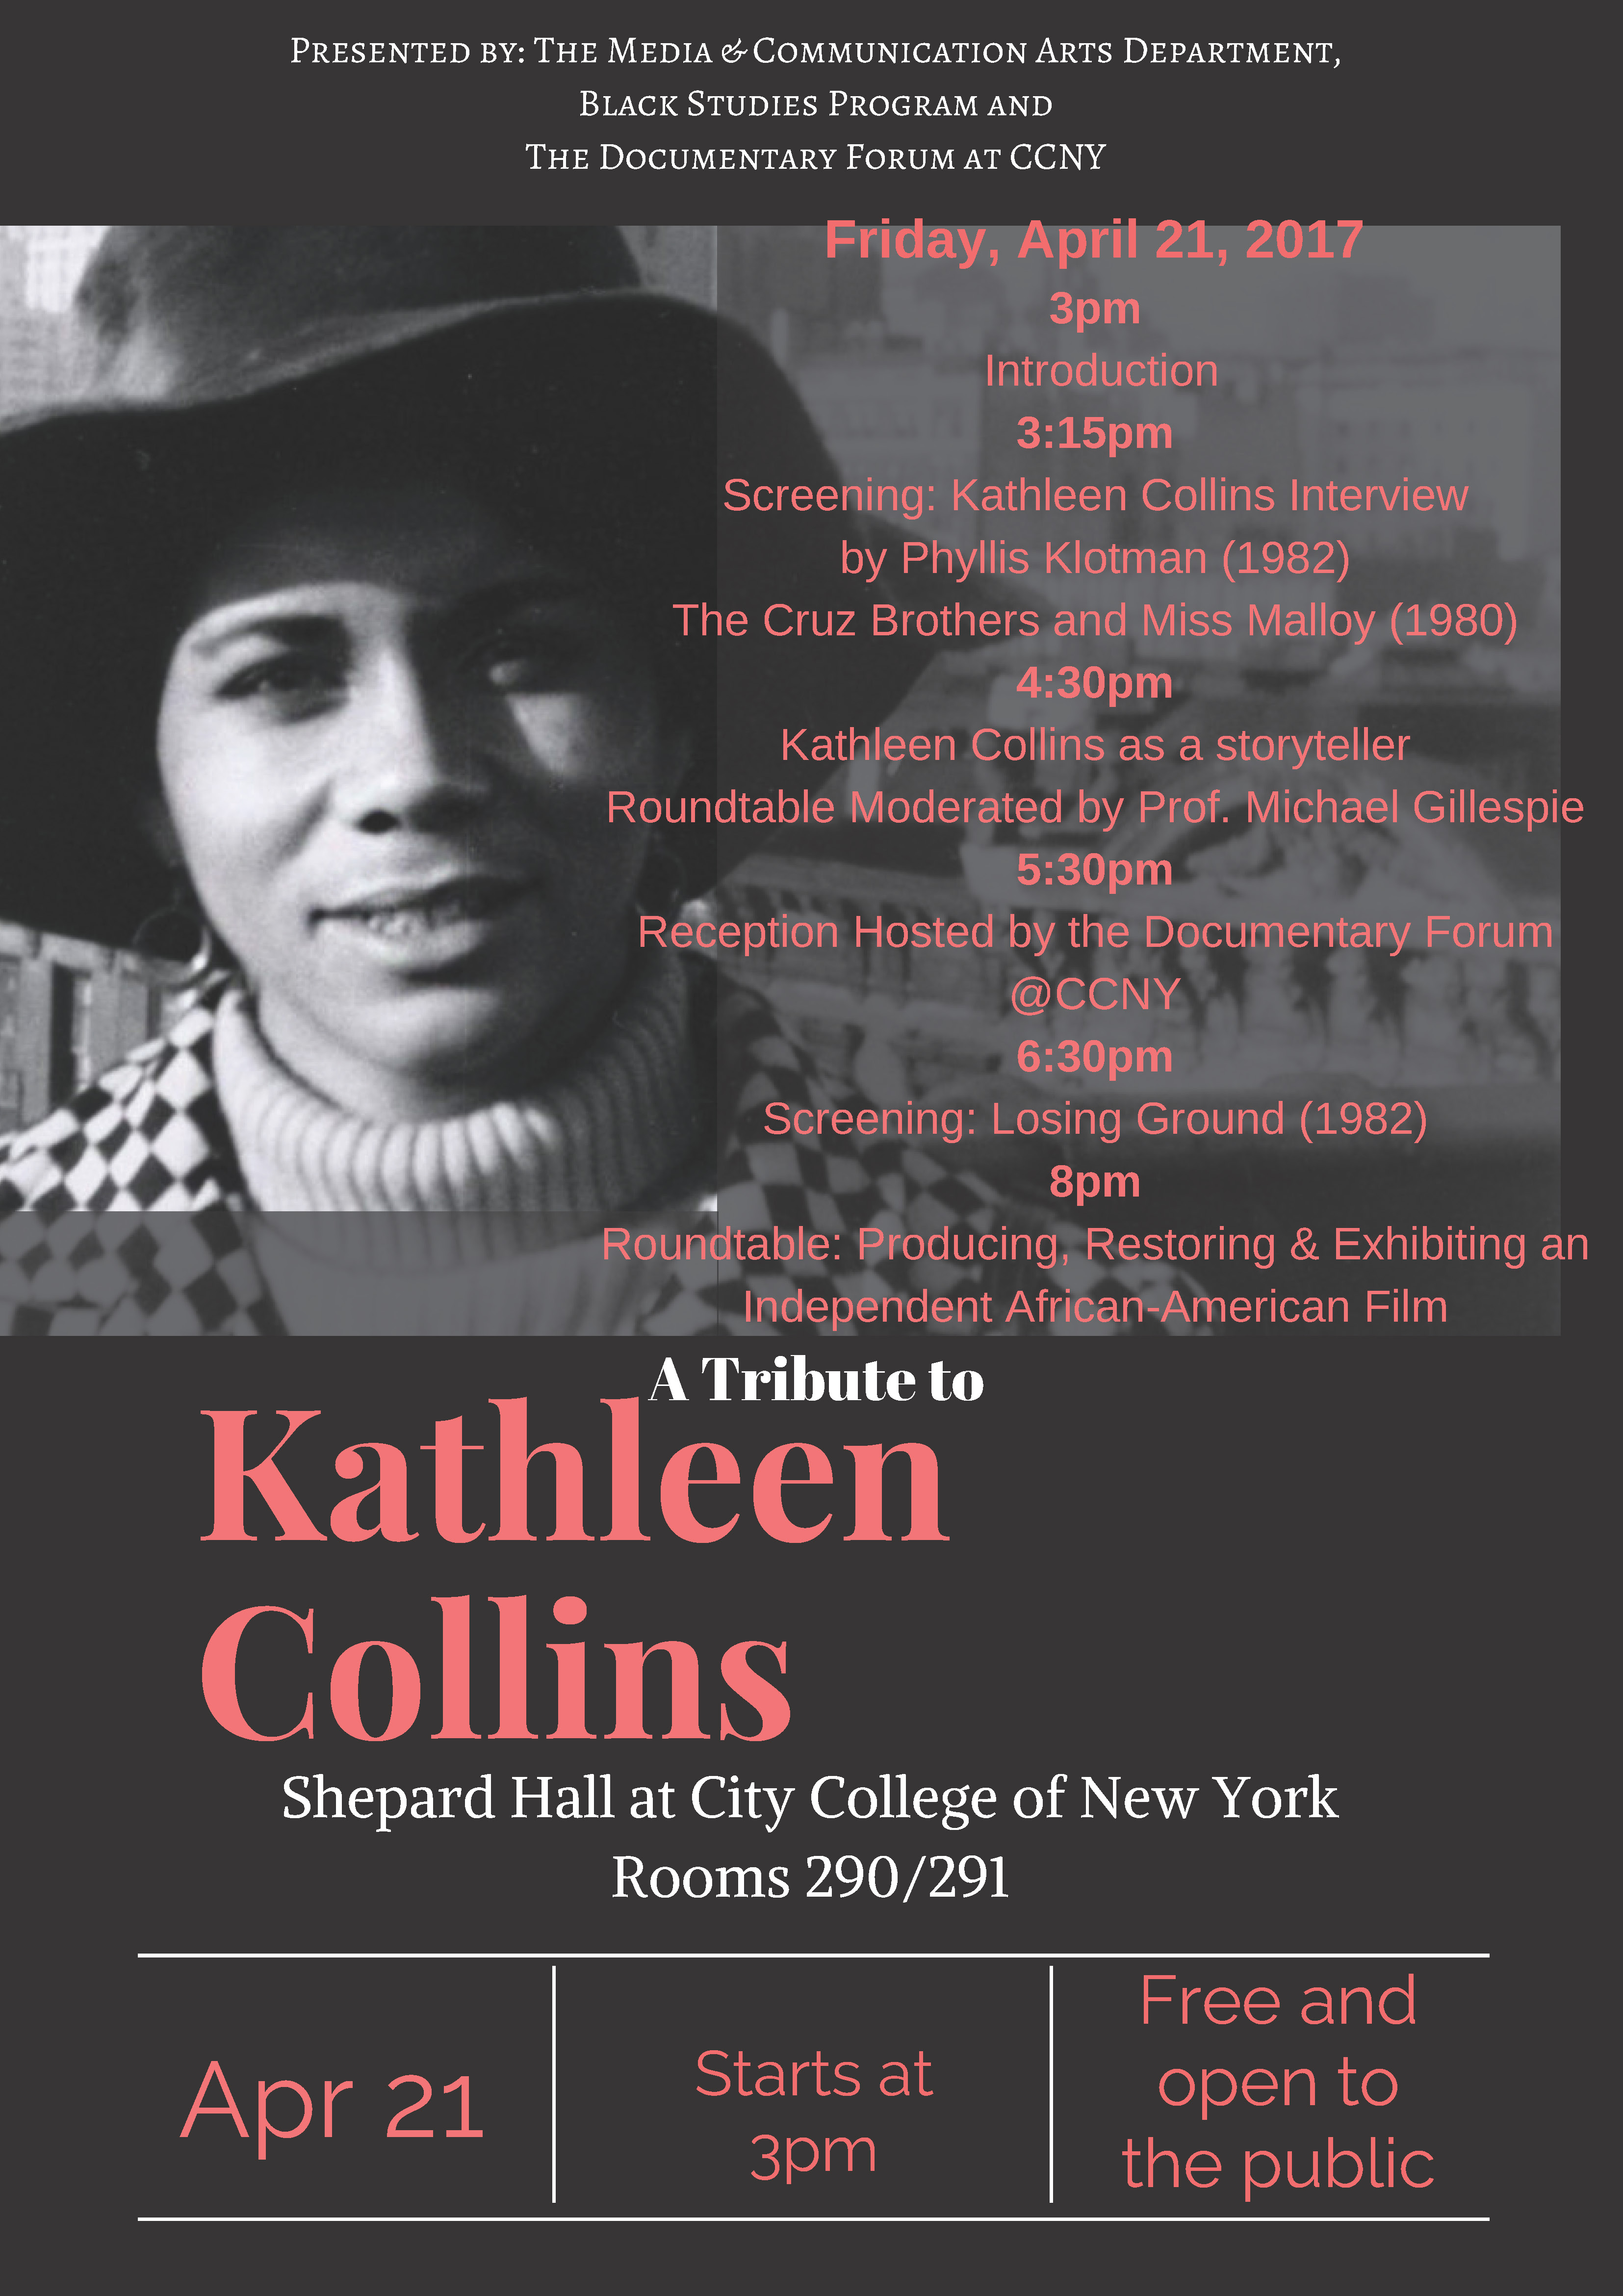 Tribute to Kathleen Collins